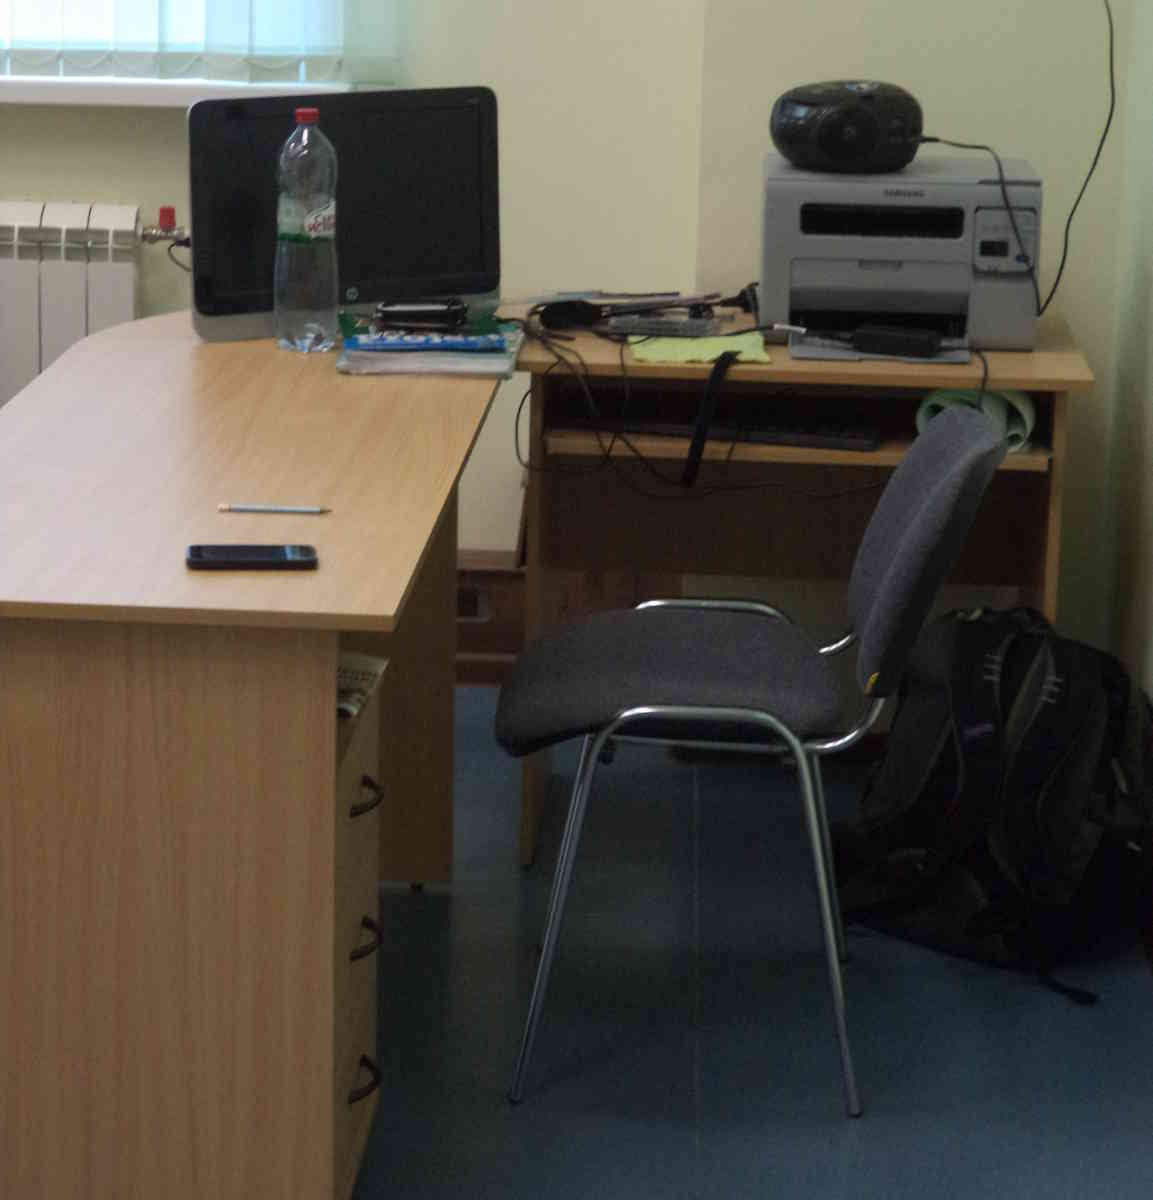 My desk where I worked at a Russian public school